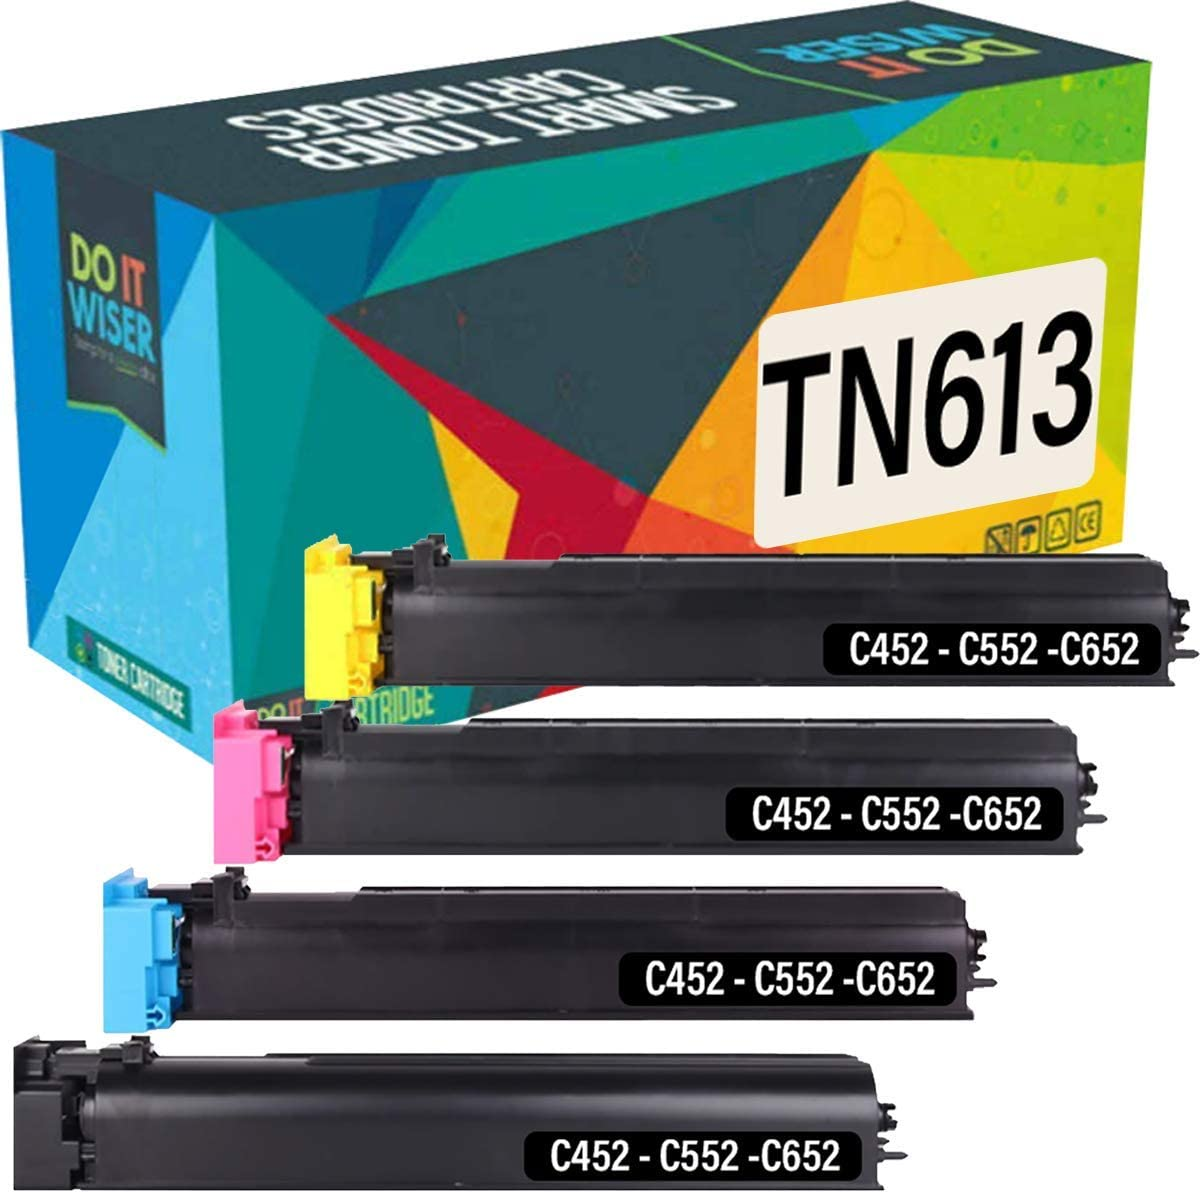 Do it Wiser Compatible Toner Cartridge Replacement for Konica Minolta Bizhub C452 C552 C652 Toner | TN613 TN613K TN613C TN613M TN613Y (4-Pack)